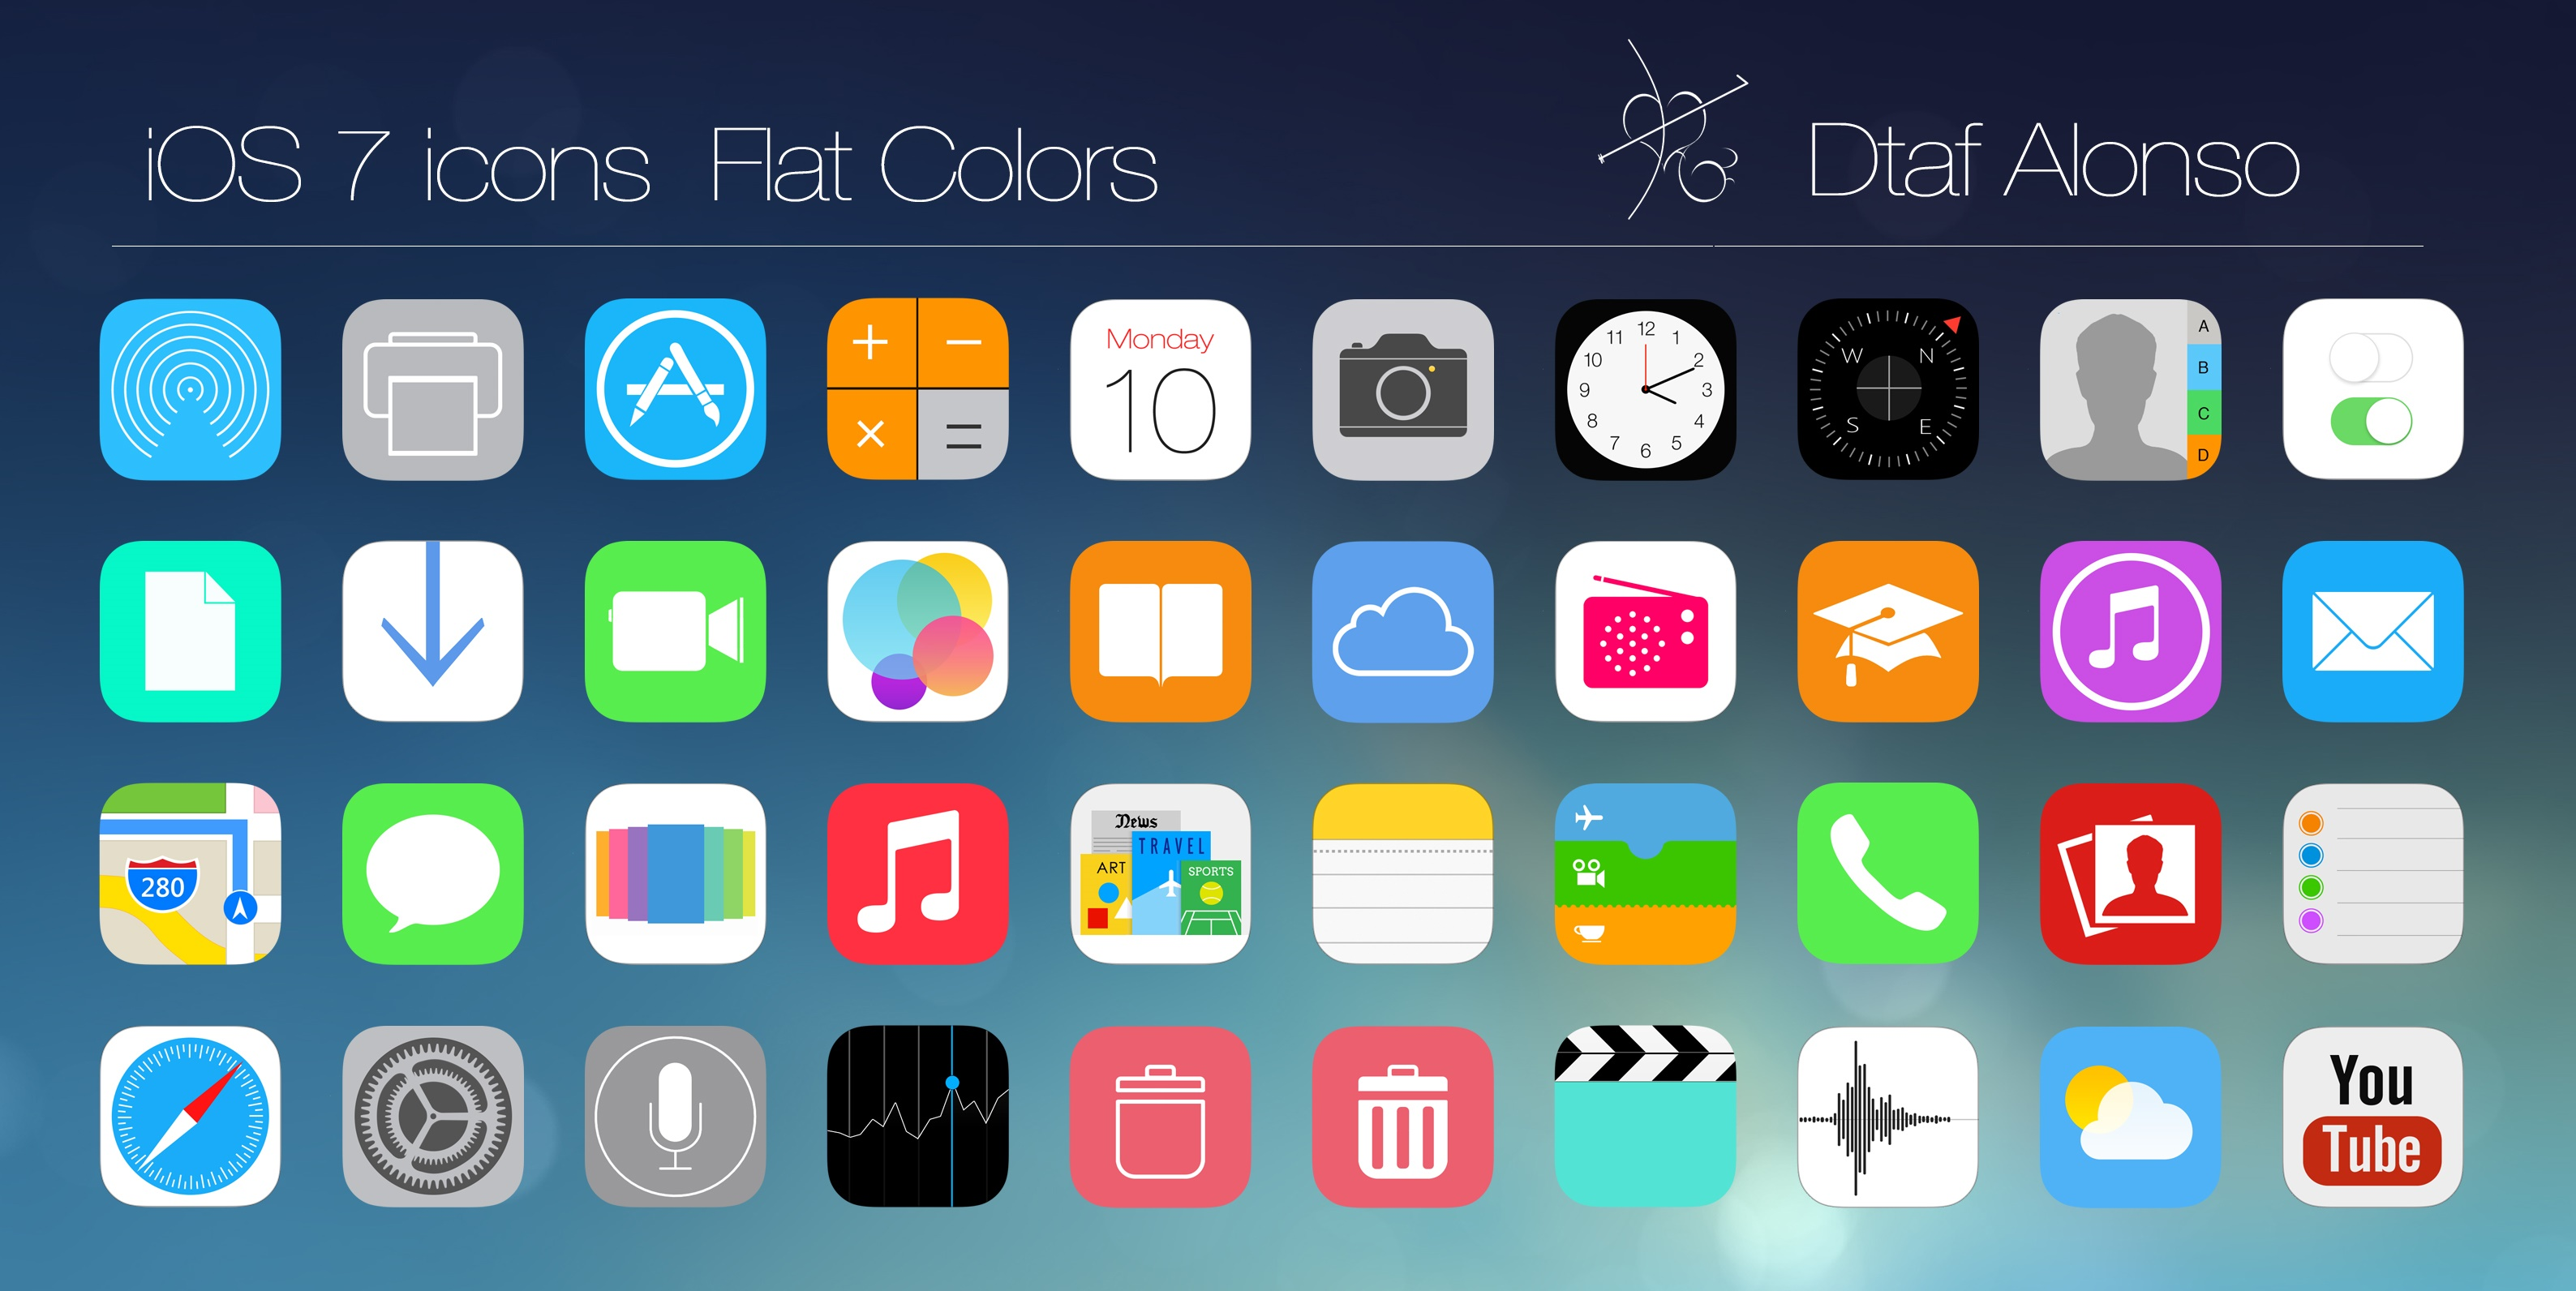 iOS 7 Flat Icons by dtafalonso